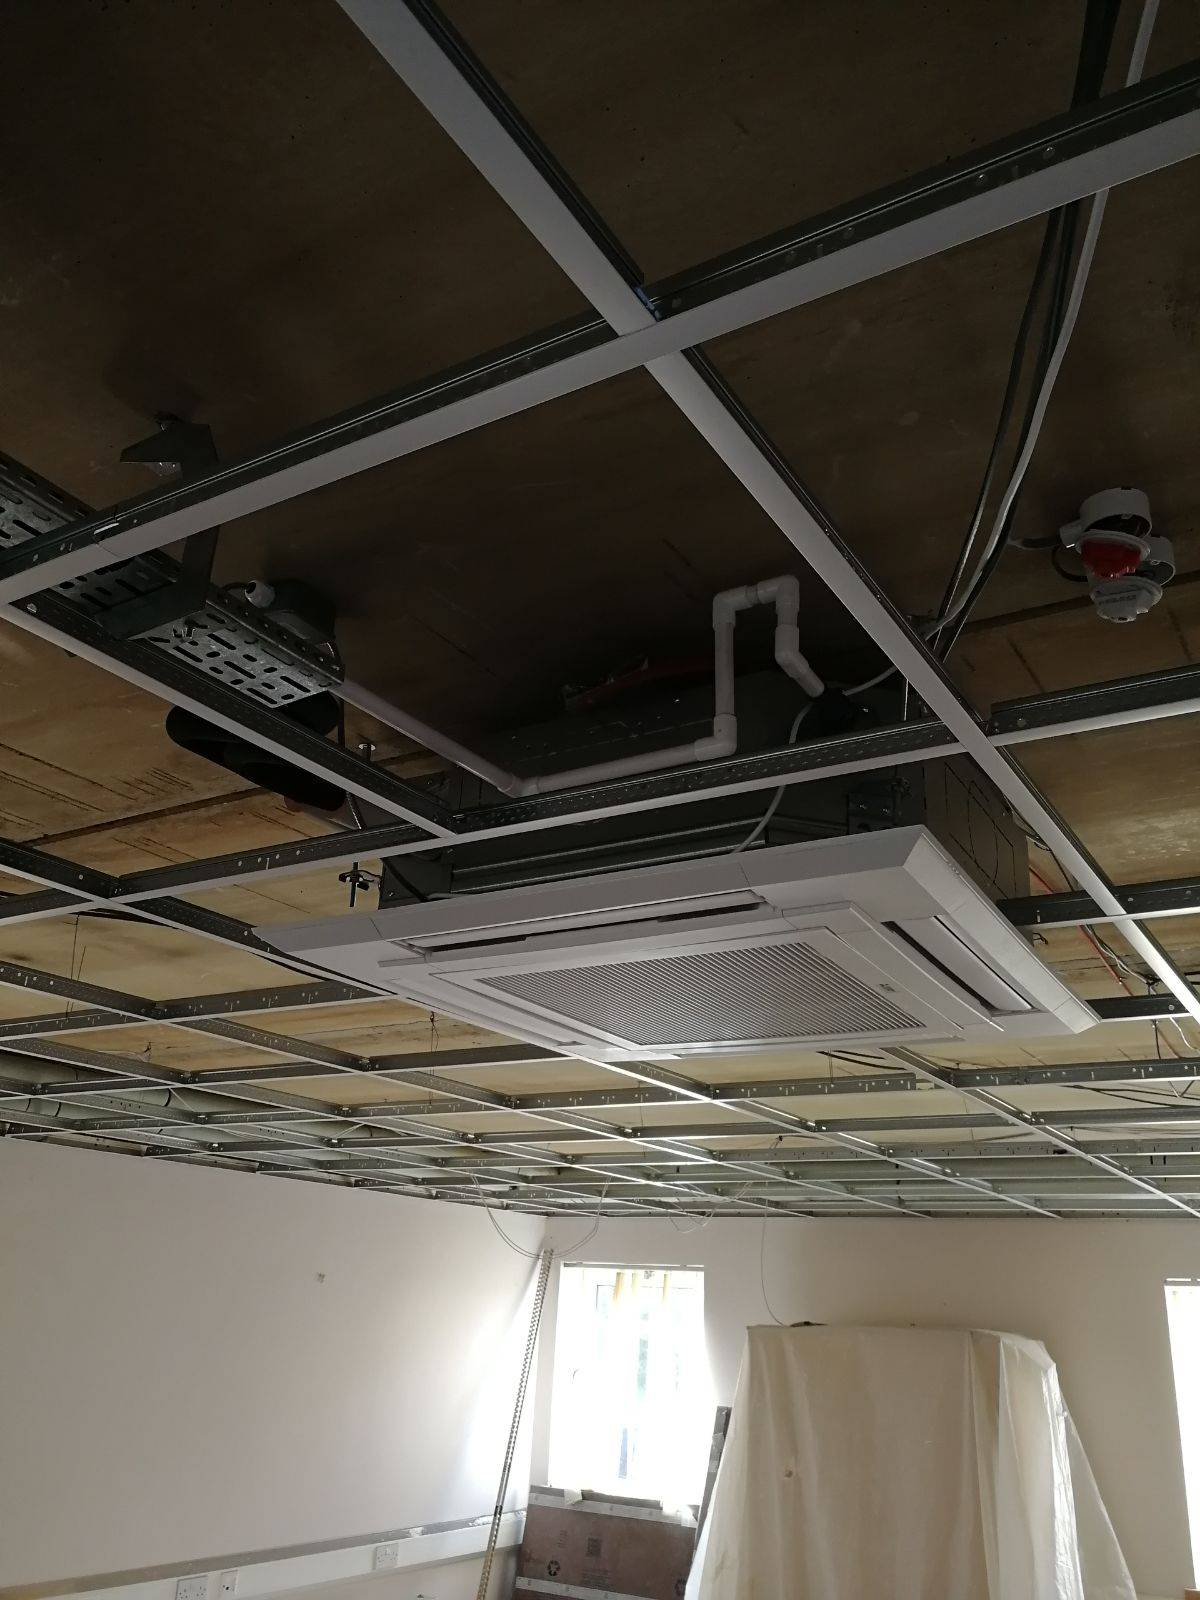 Process of Office Installation of Air Con Unit